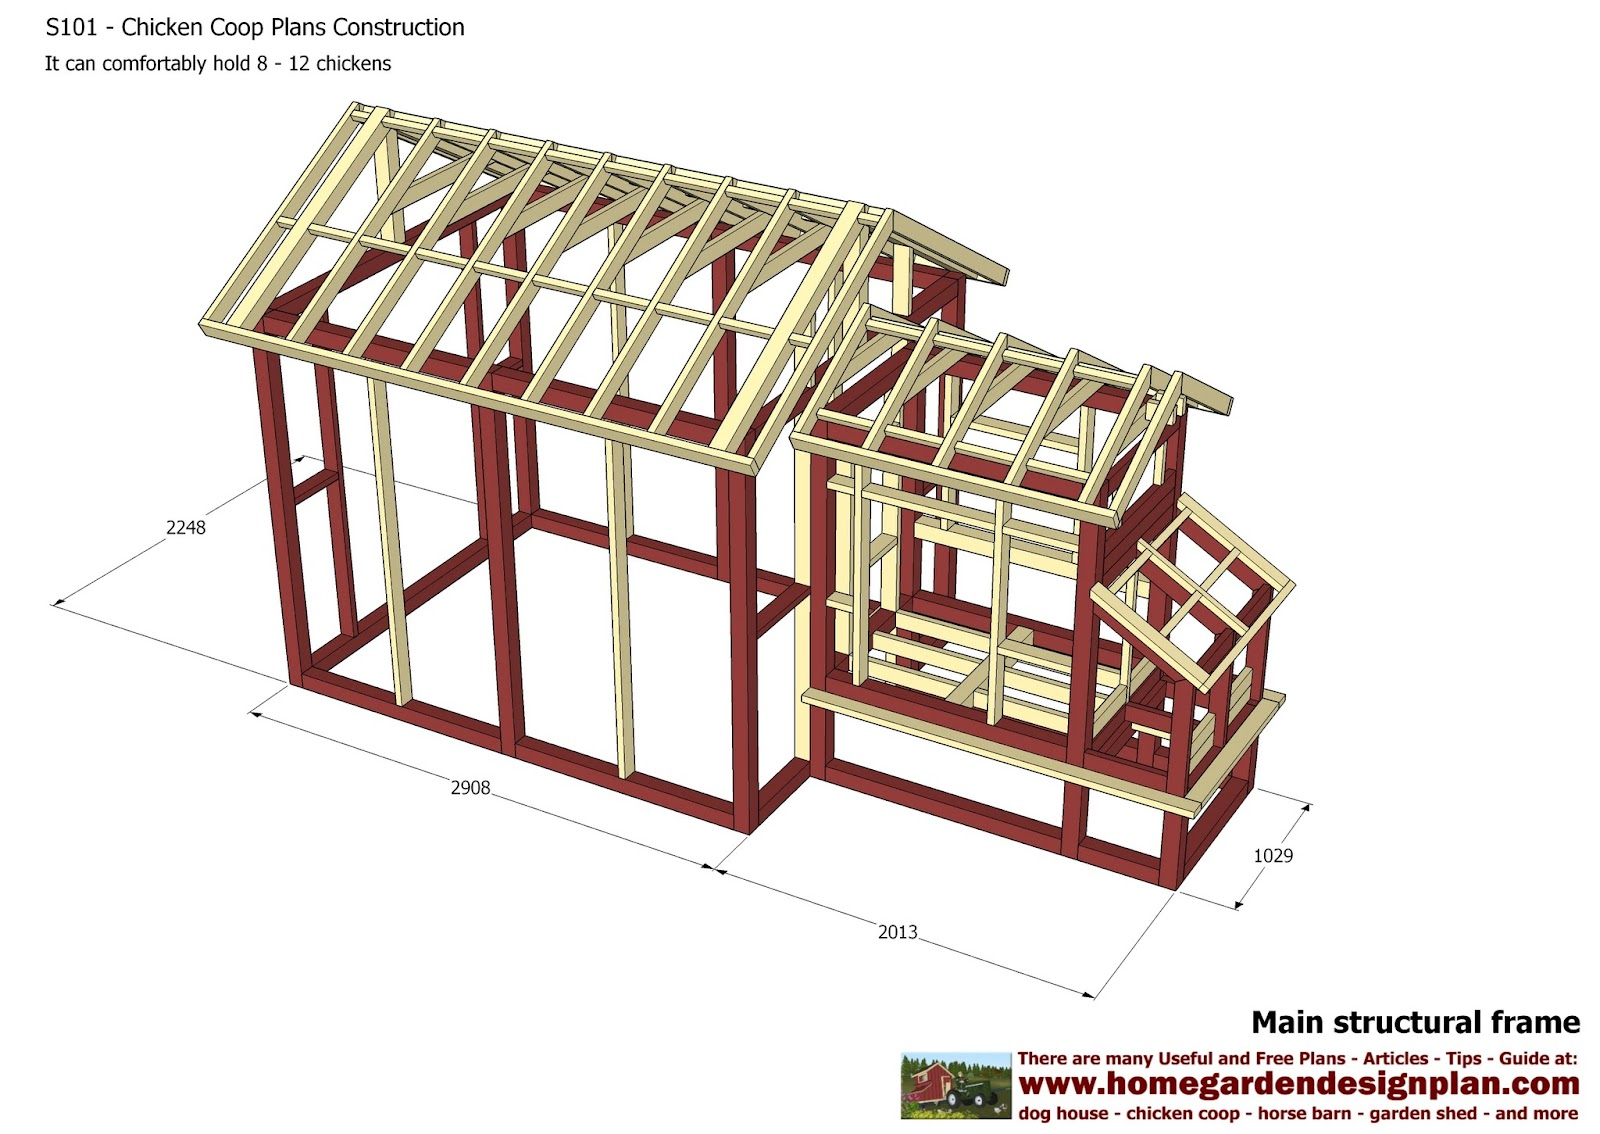 Home garden plans s101 chicken coop plans construction for Free chicken plans